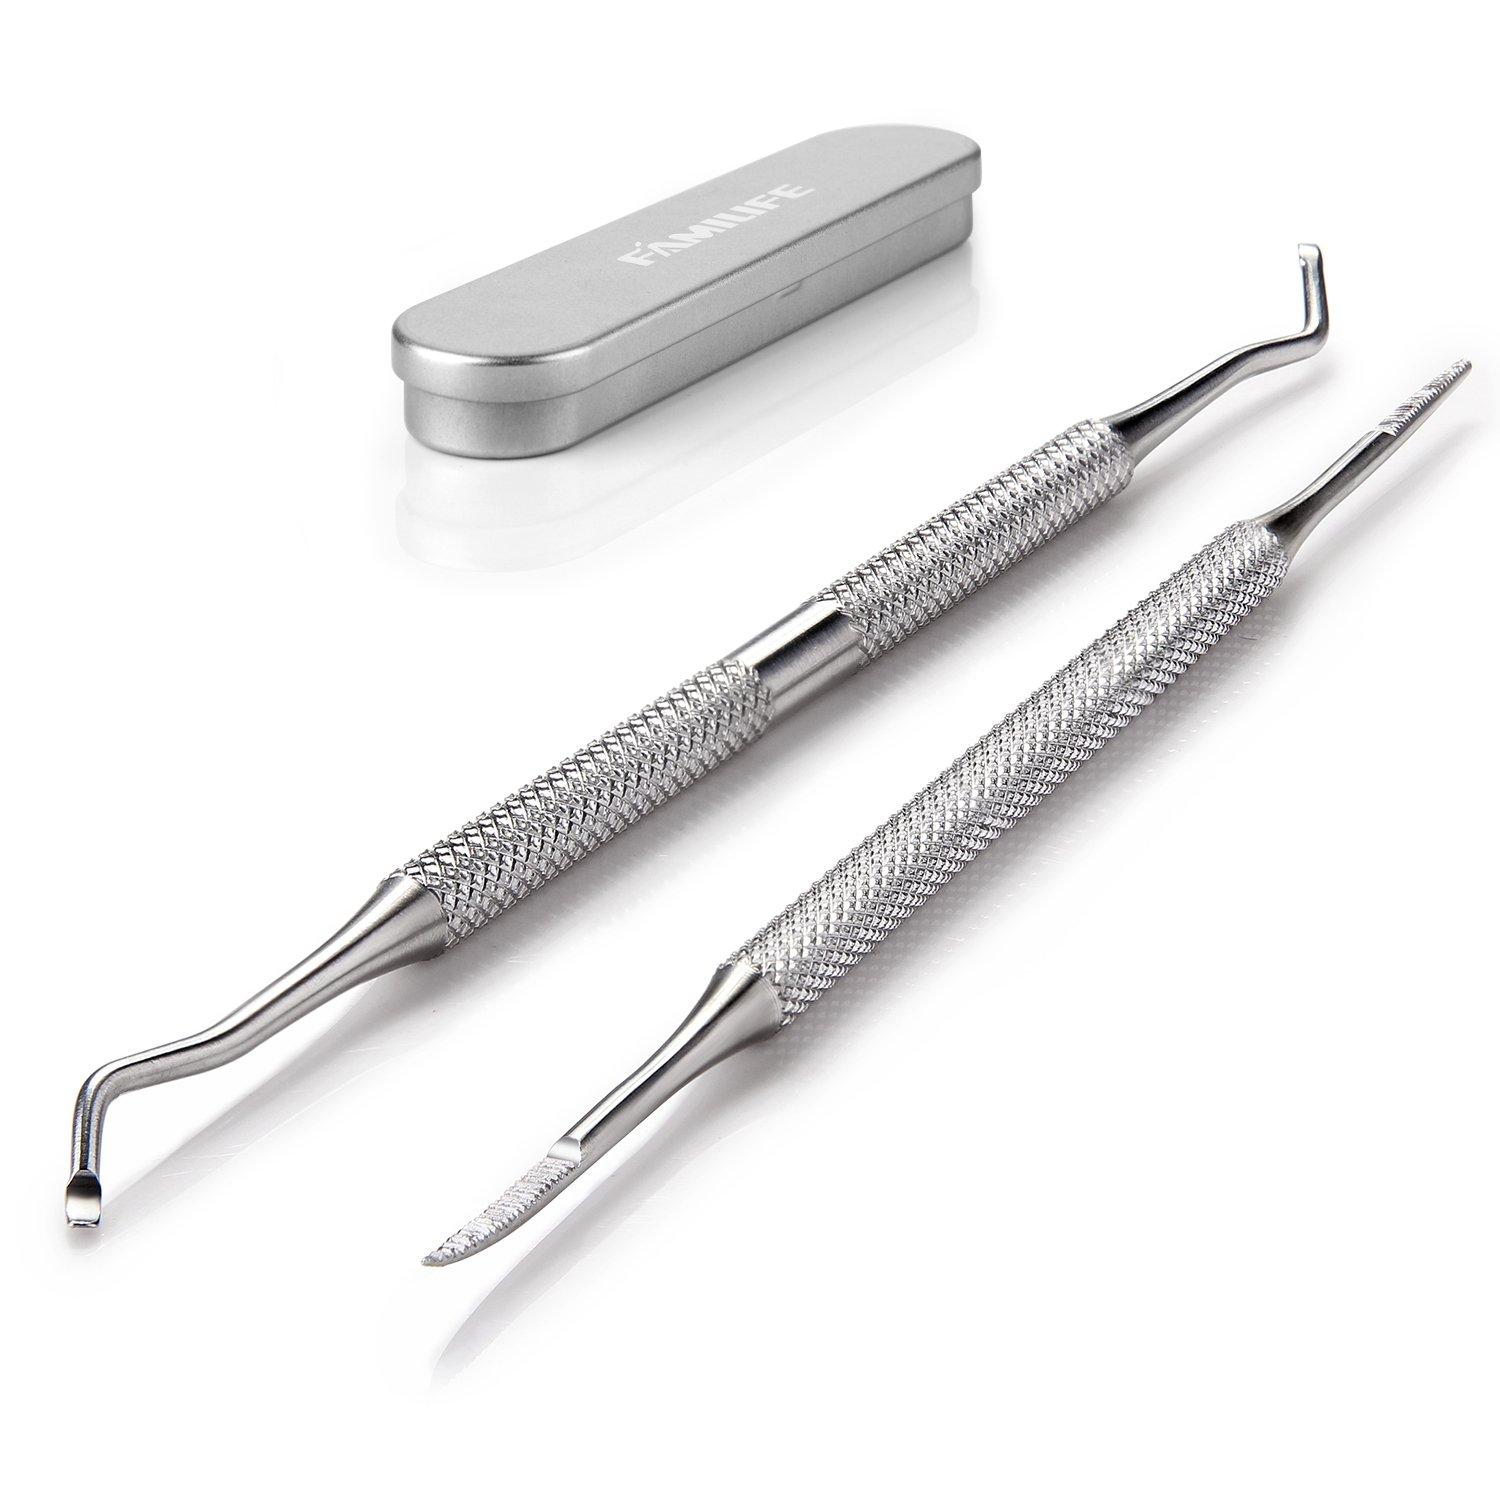 FAMILIFE L07 100% Stainless Steel Ingrown Toenail File and Lifter Double Sided with Storage Case